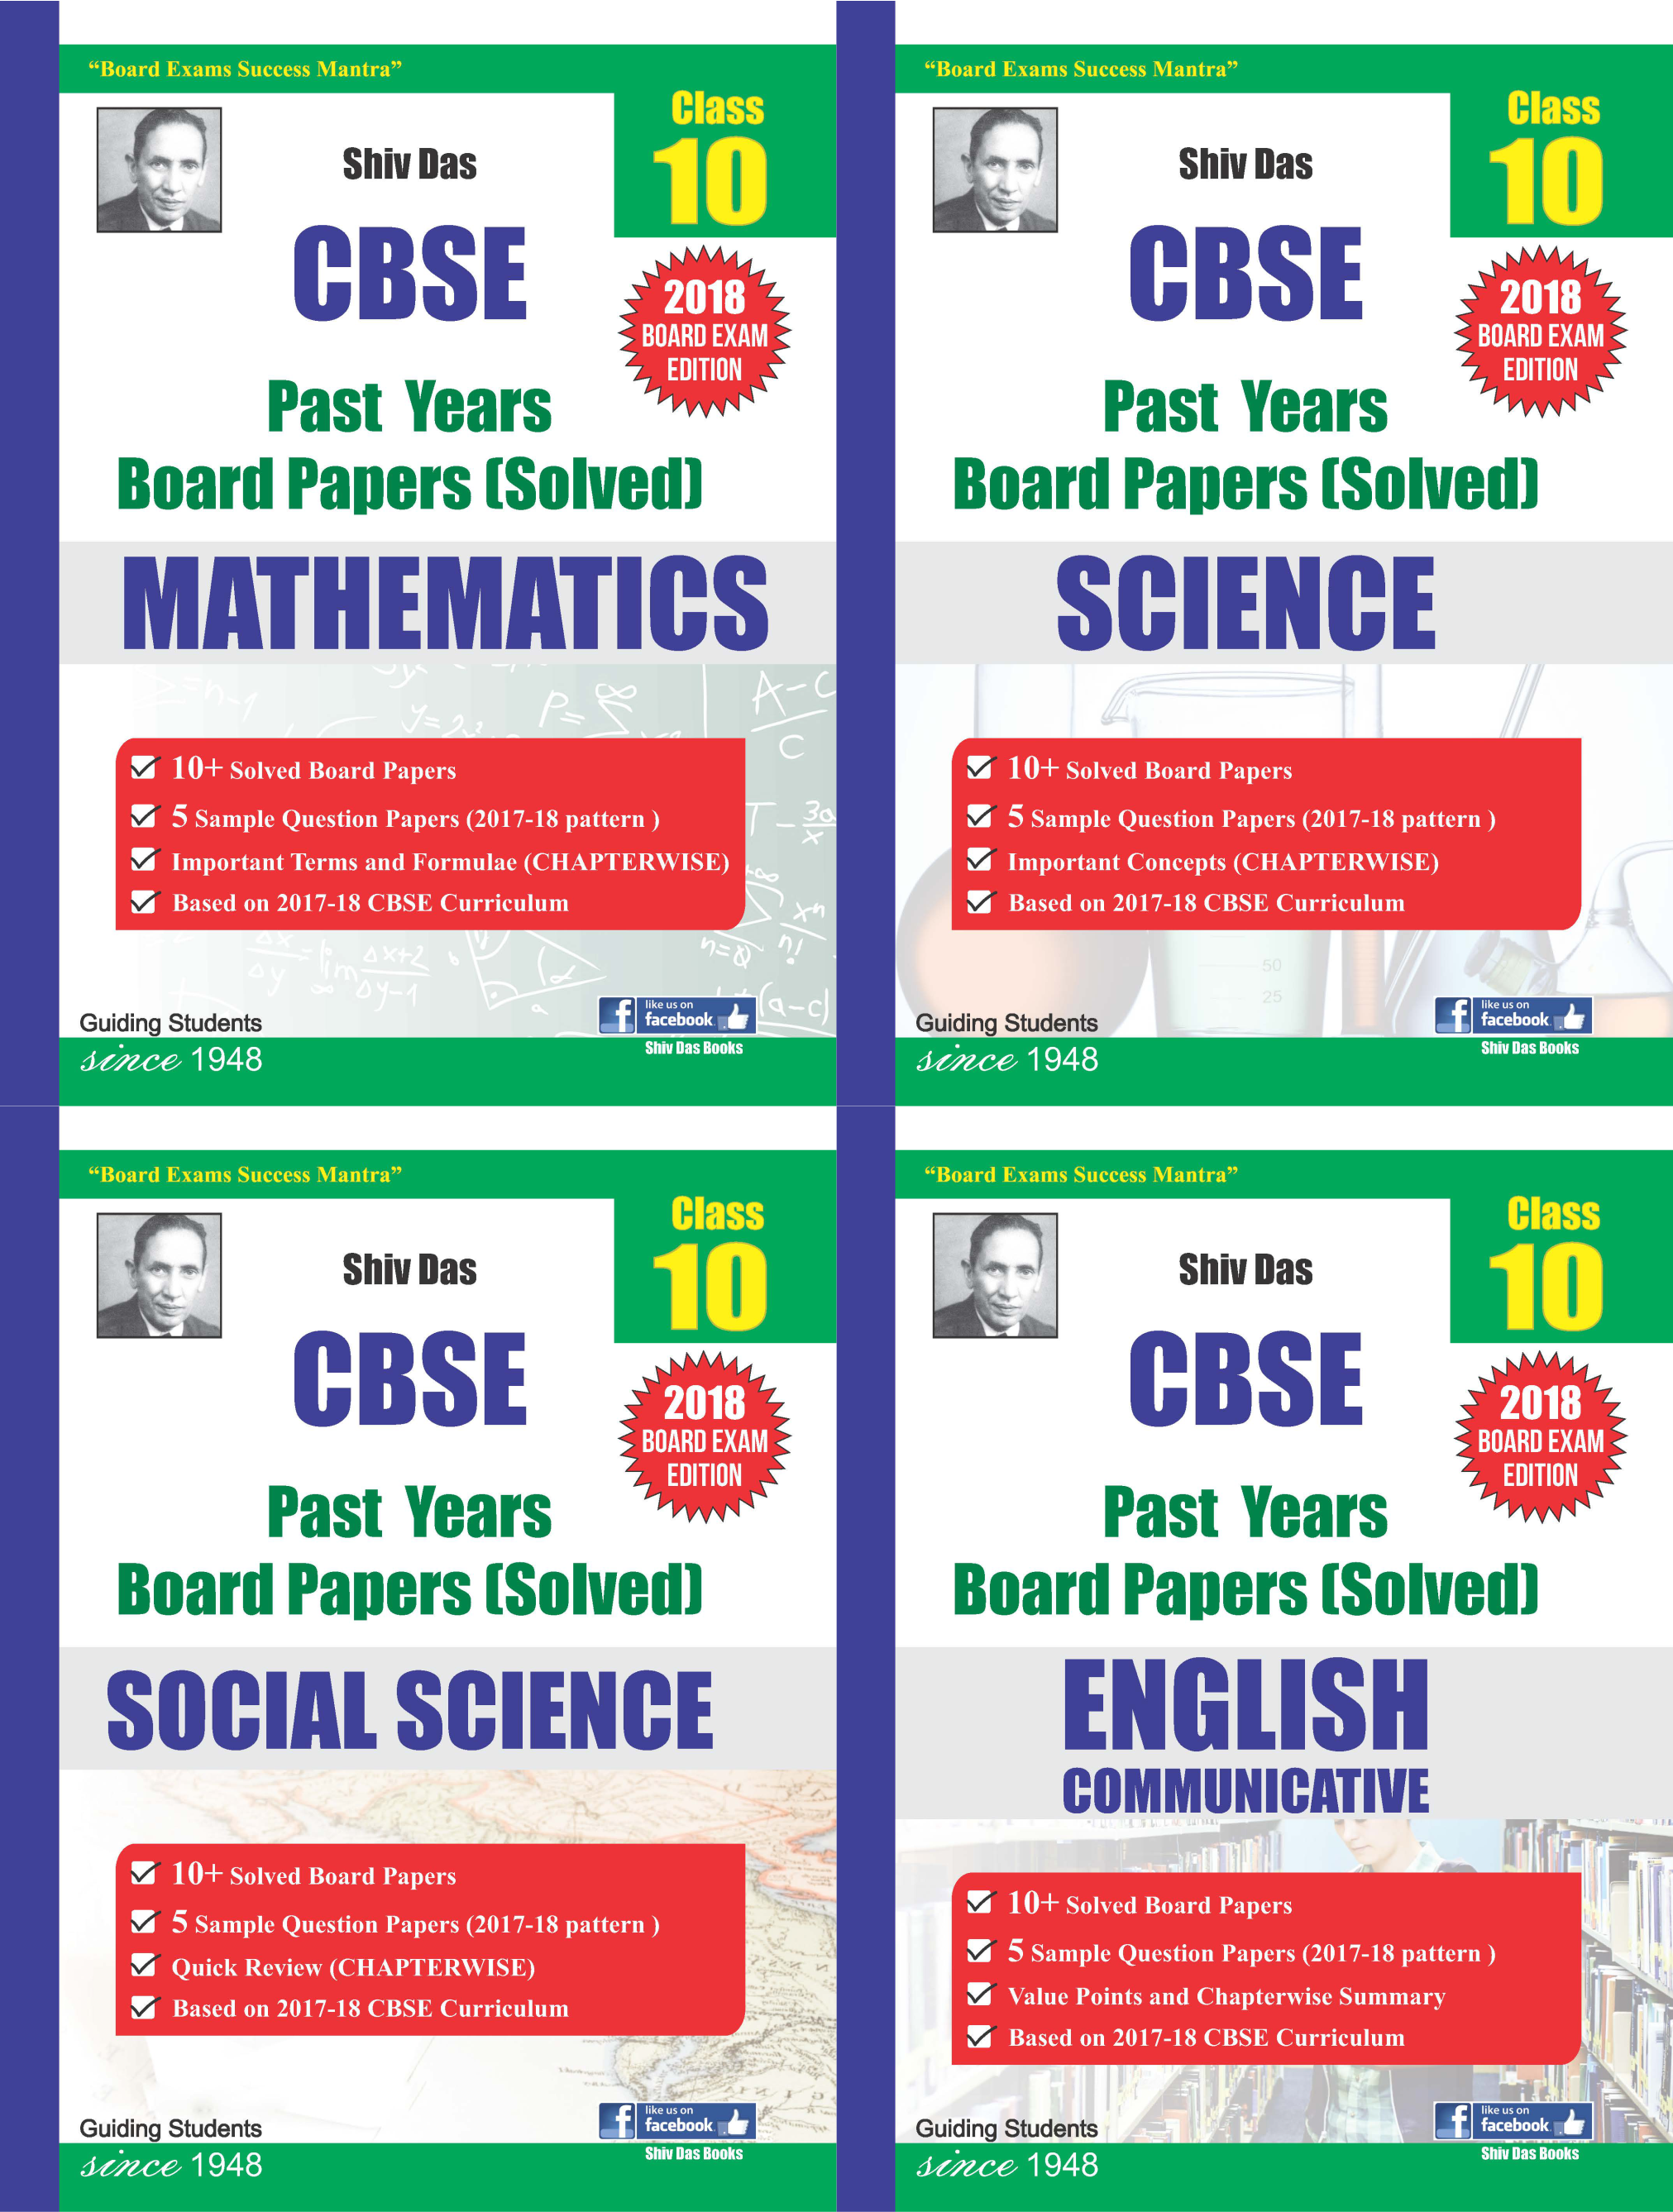 CBSE Past Years Board Papers Pack of 4 for Class 10 Maths Science Social Science English Communicative (2018 Board Exam Edition)